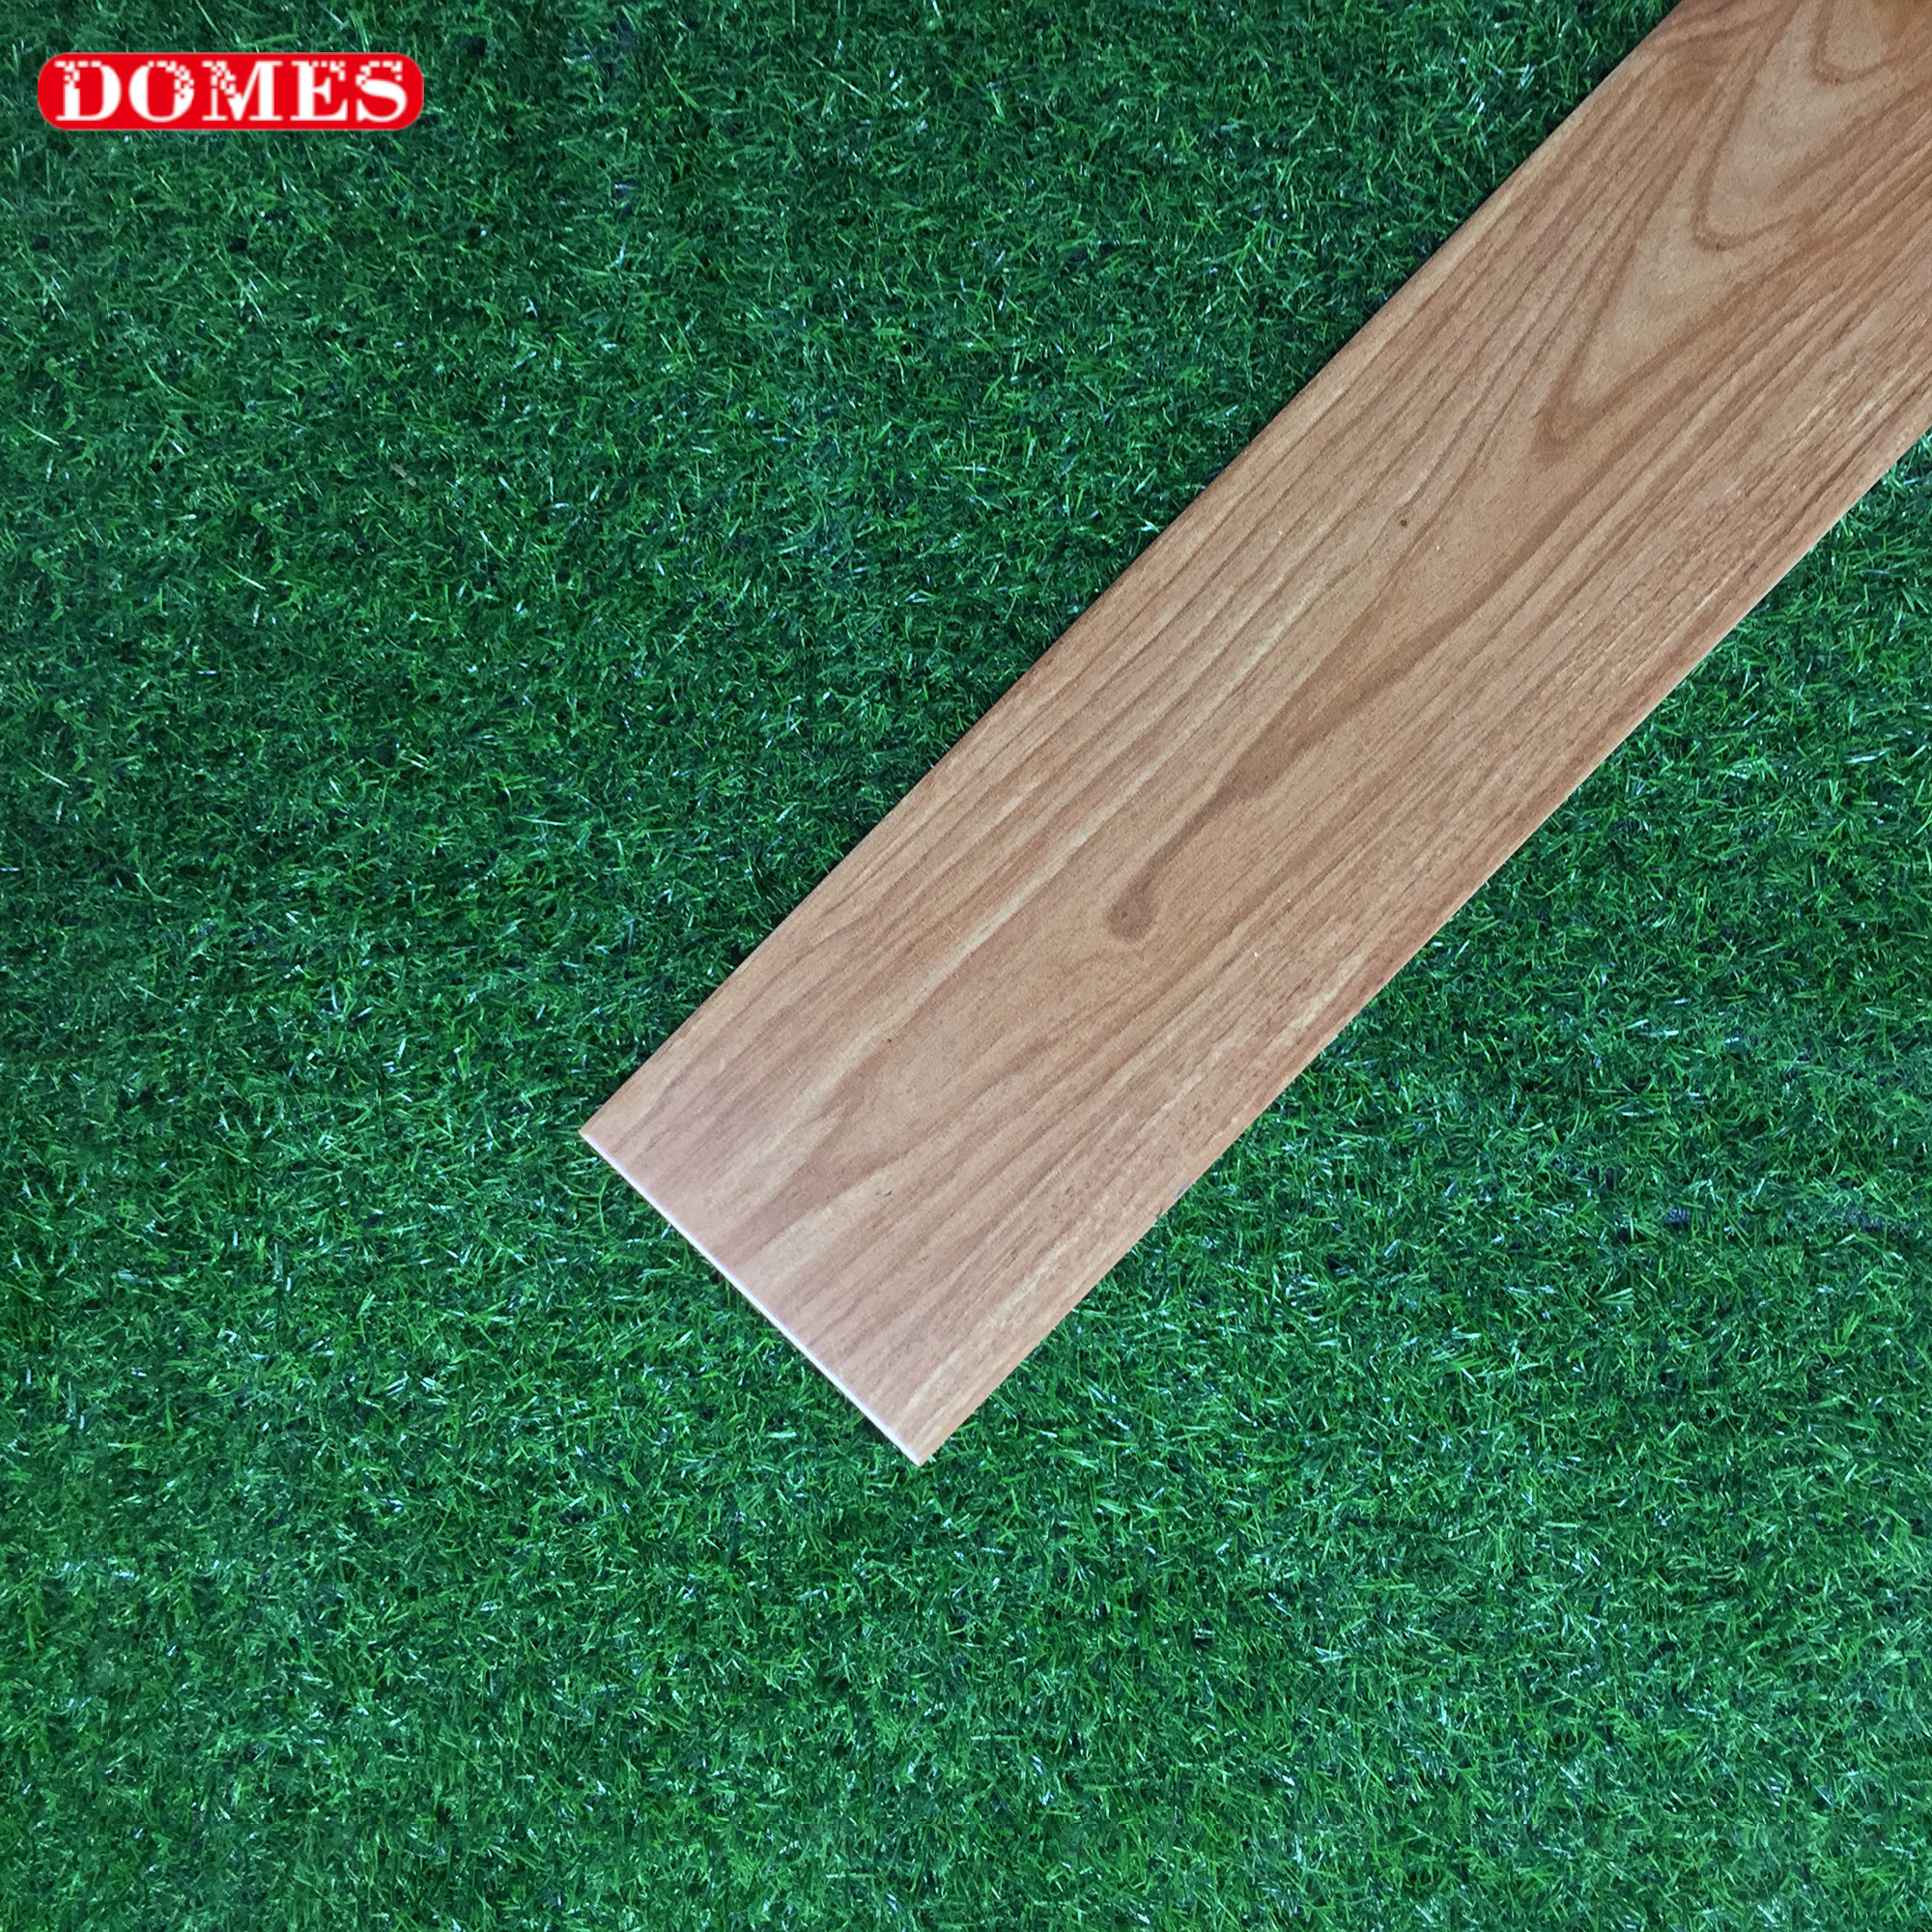 China Manufacturer Non Slip Wooden Floor Porcelain <strong>Tile</strong> Kajaria Vitrified <strong>Tiles</strong> Price Cheap